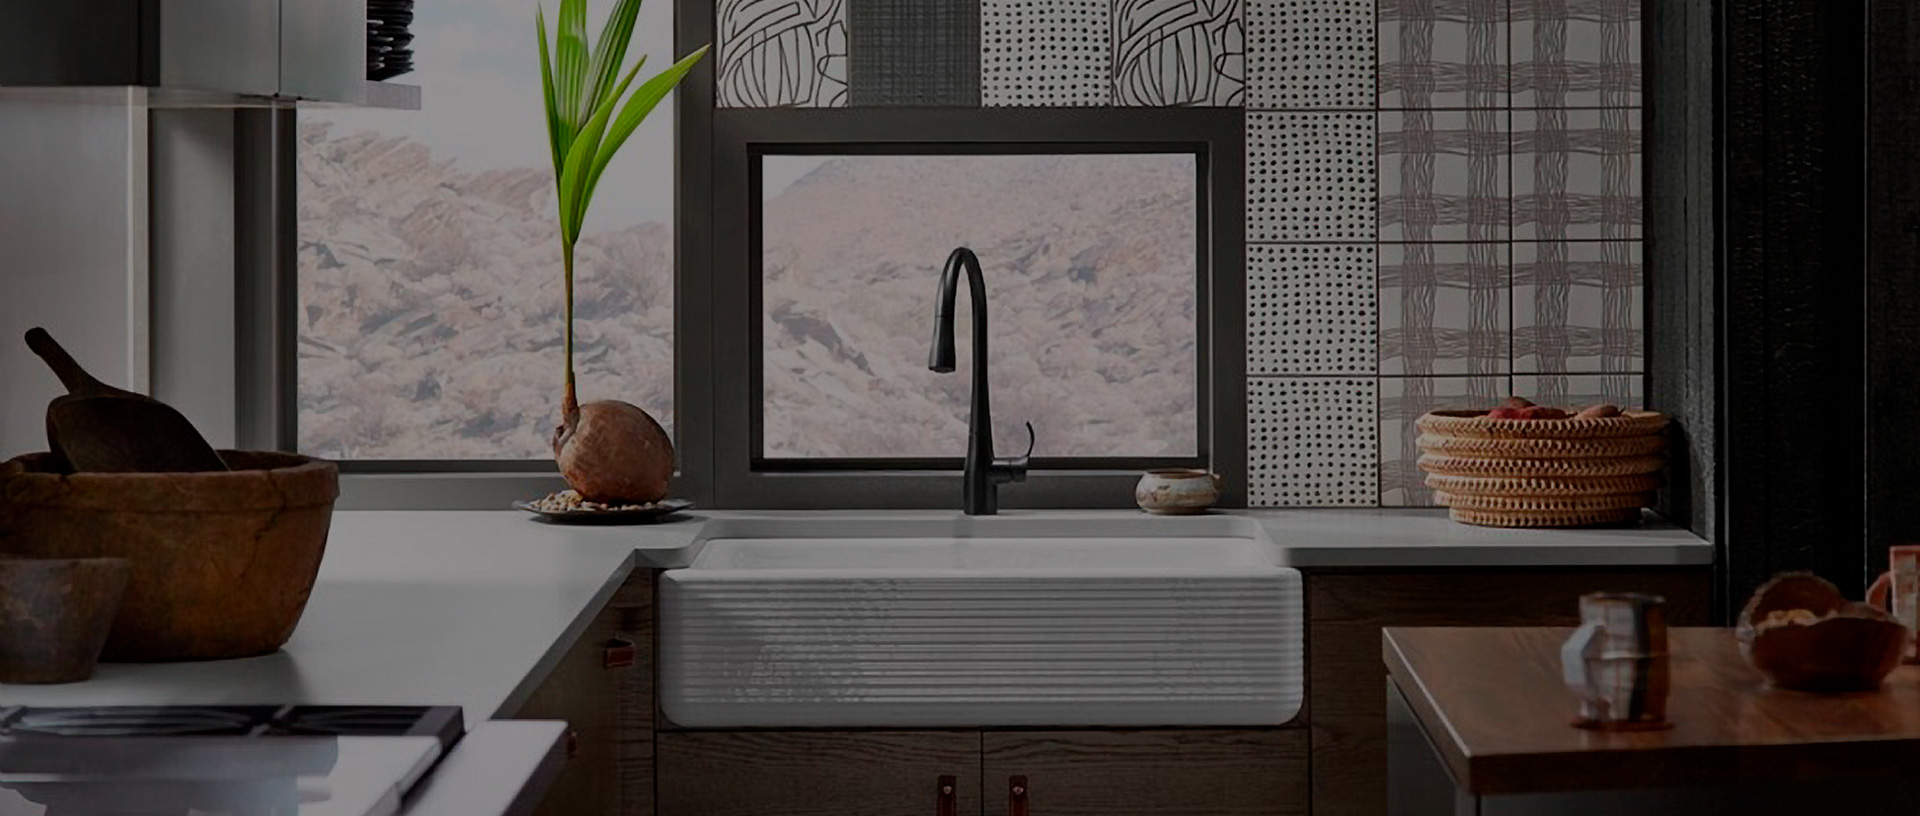 white kitchen sink with window surrounded by patterned tile